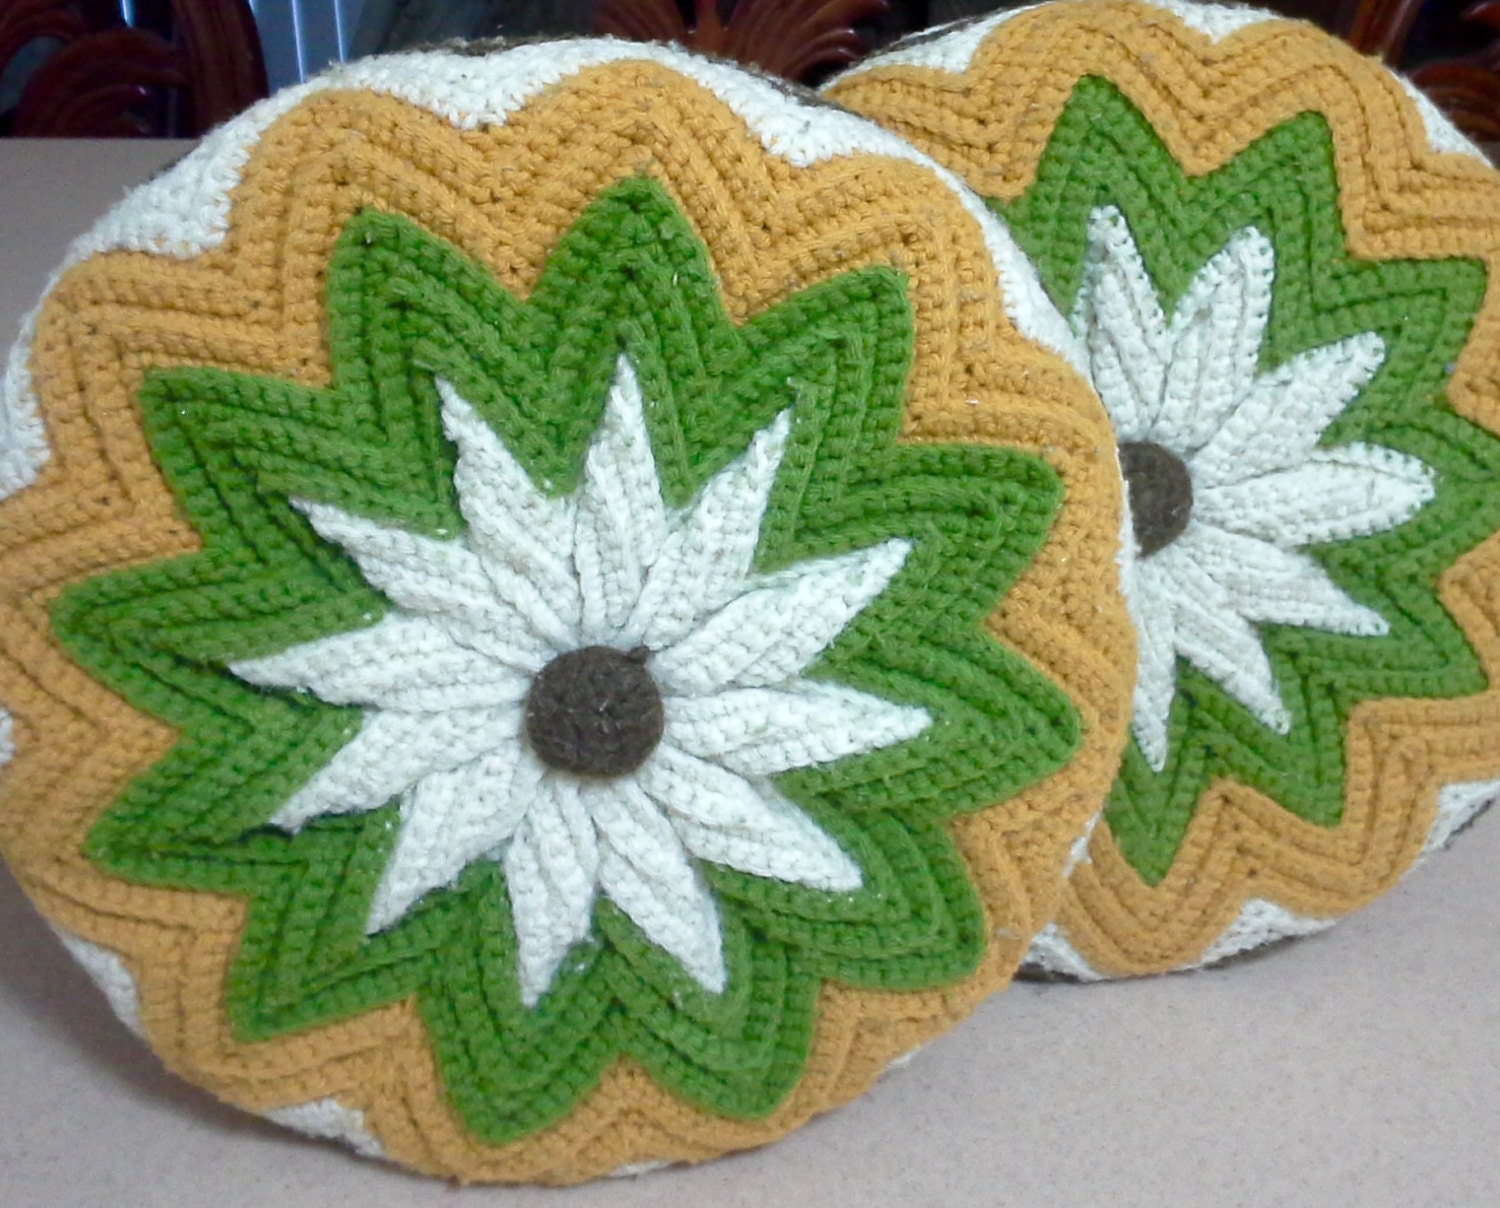 Set of 2 Mid Century Round Knit Pillows Vintage by Lalecreations